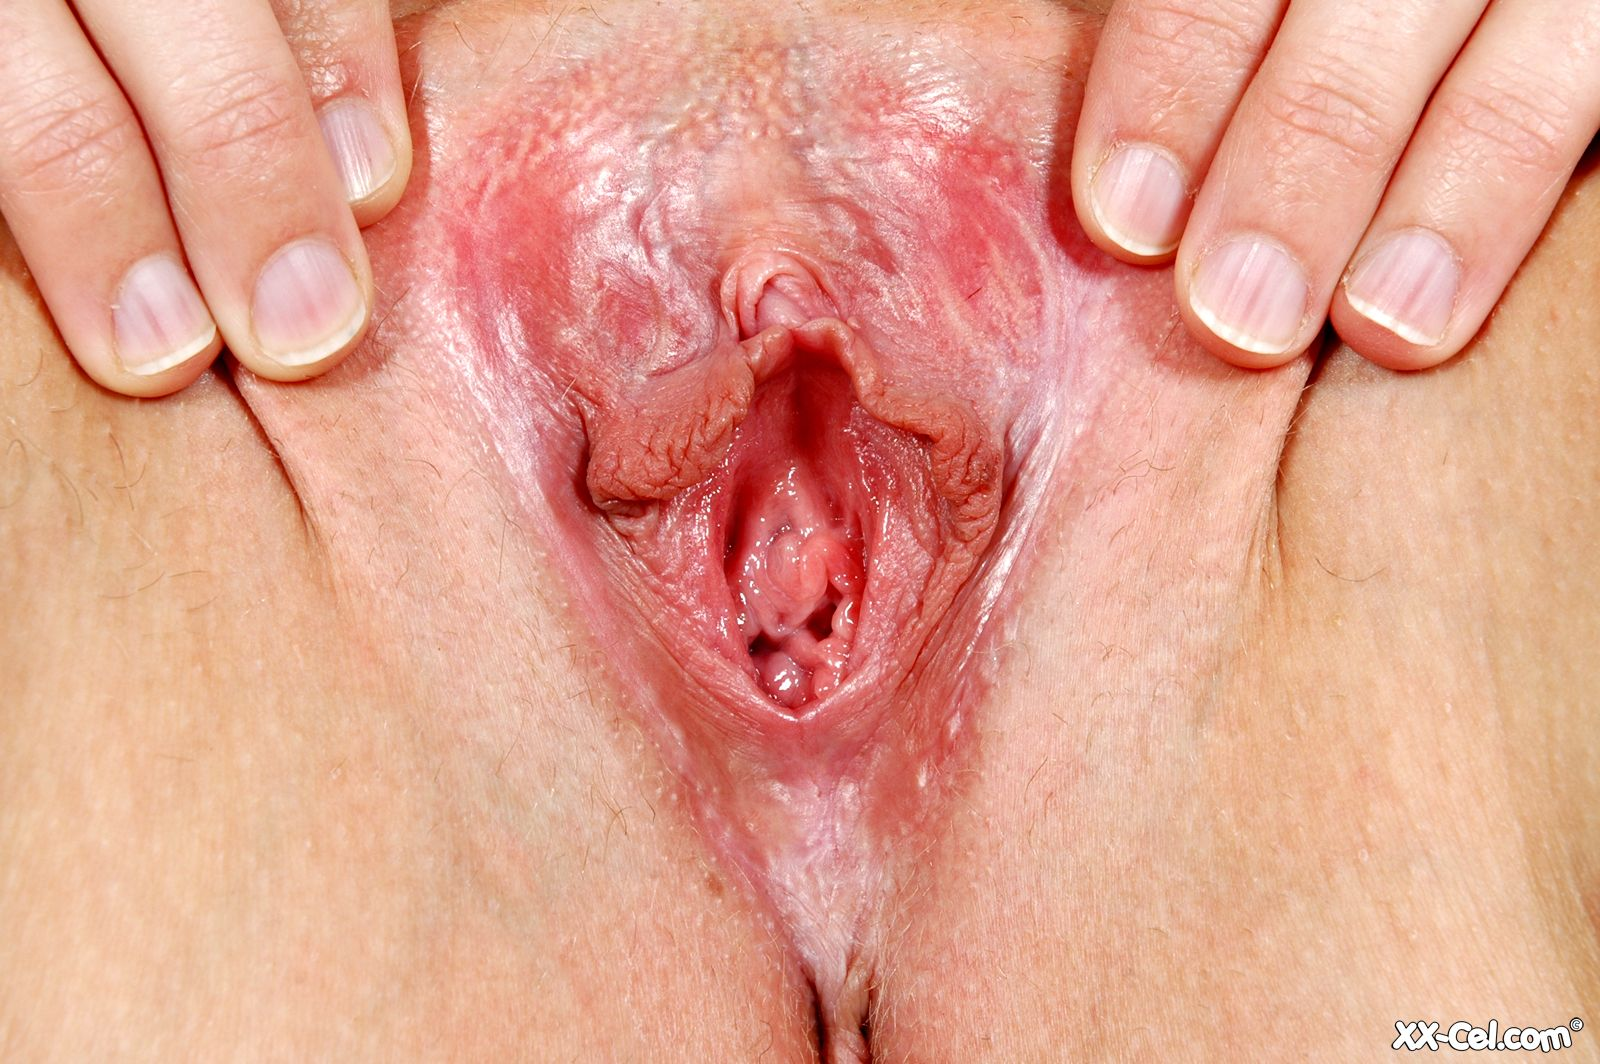 photo of the vagina